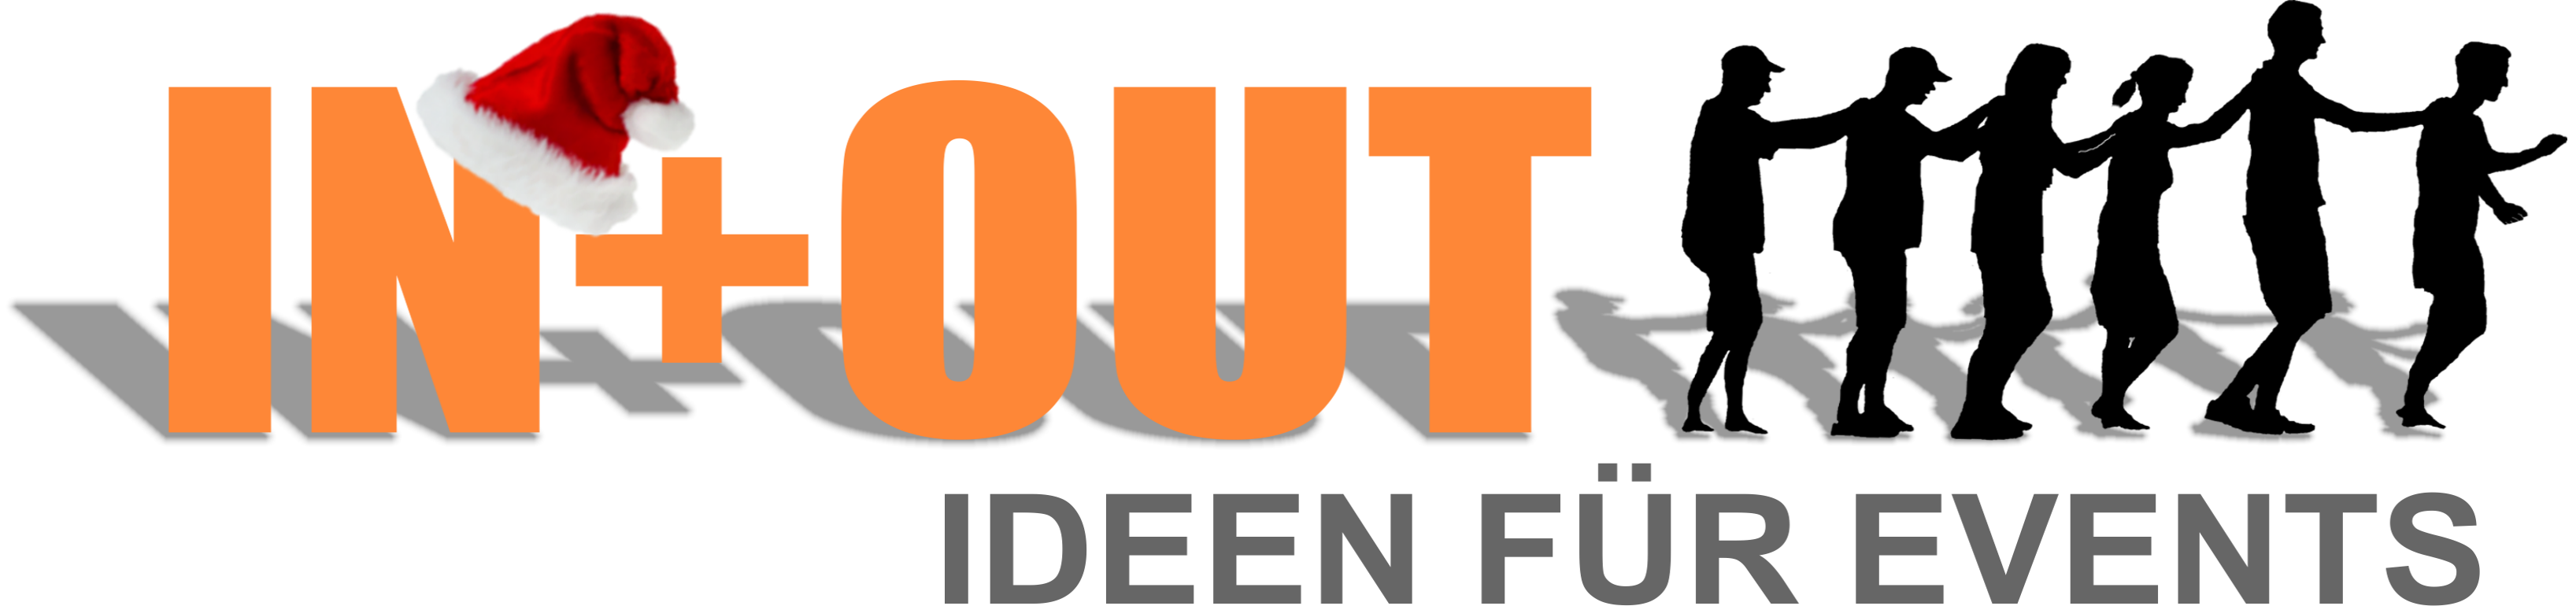 IN+OUT EVENTS LOGO